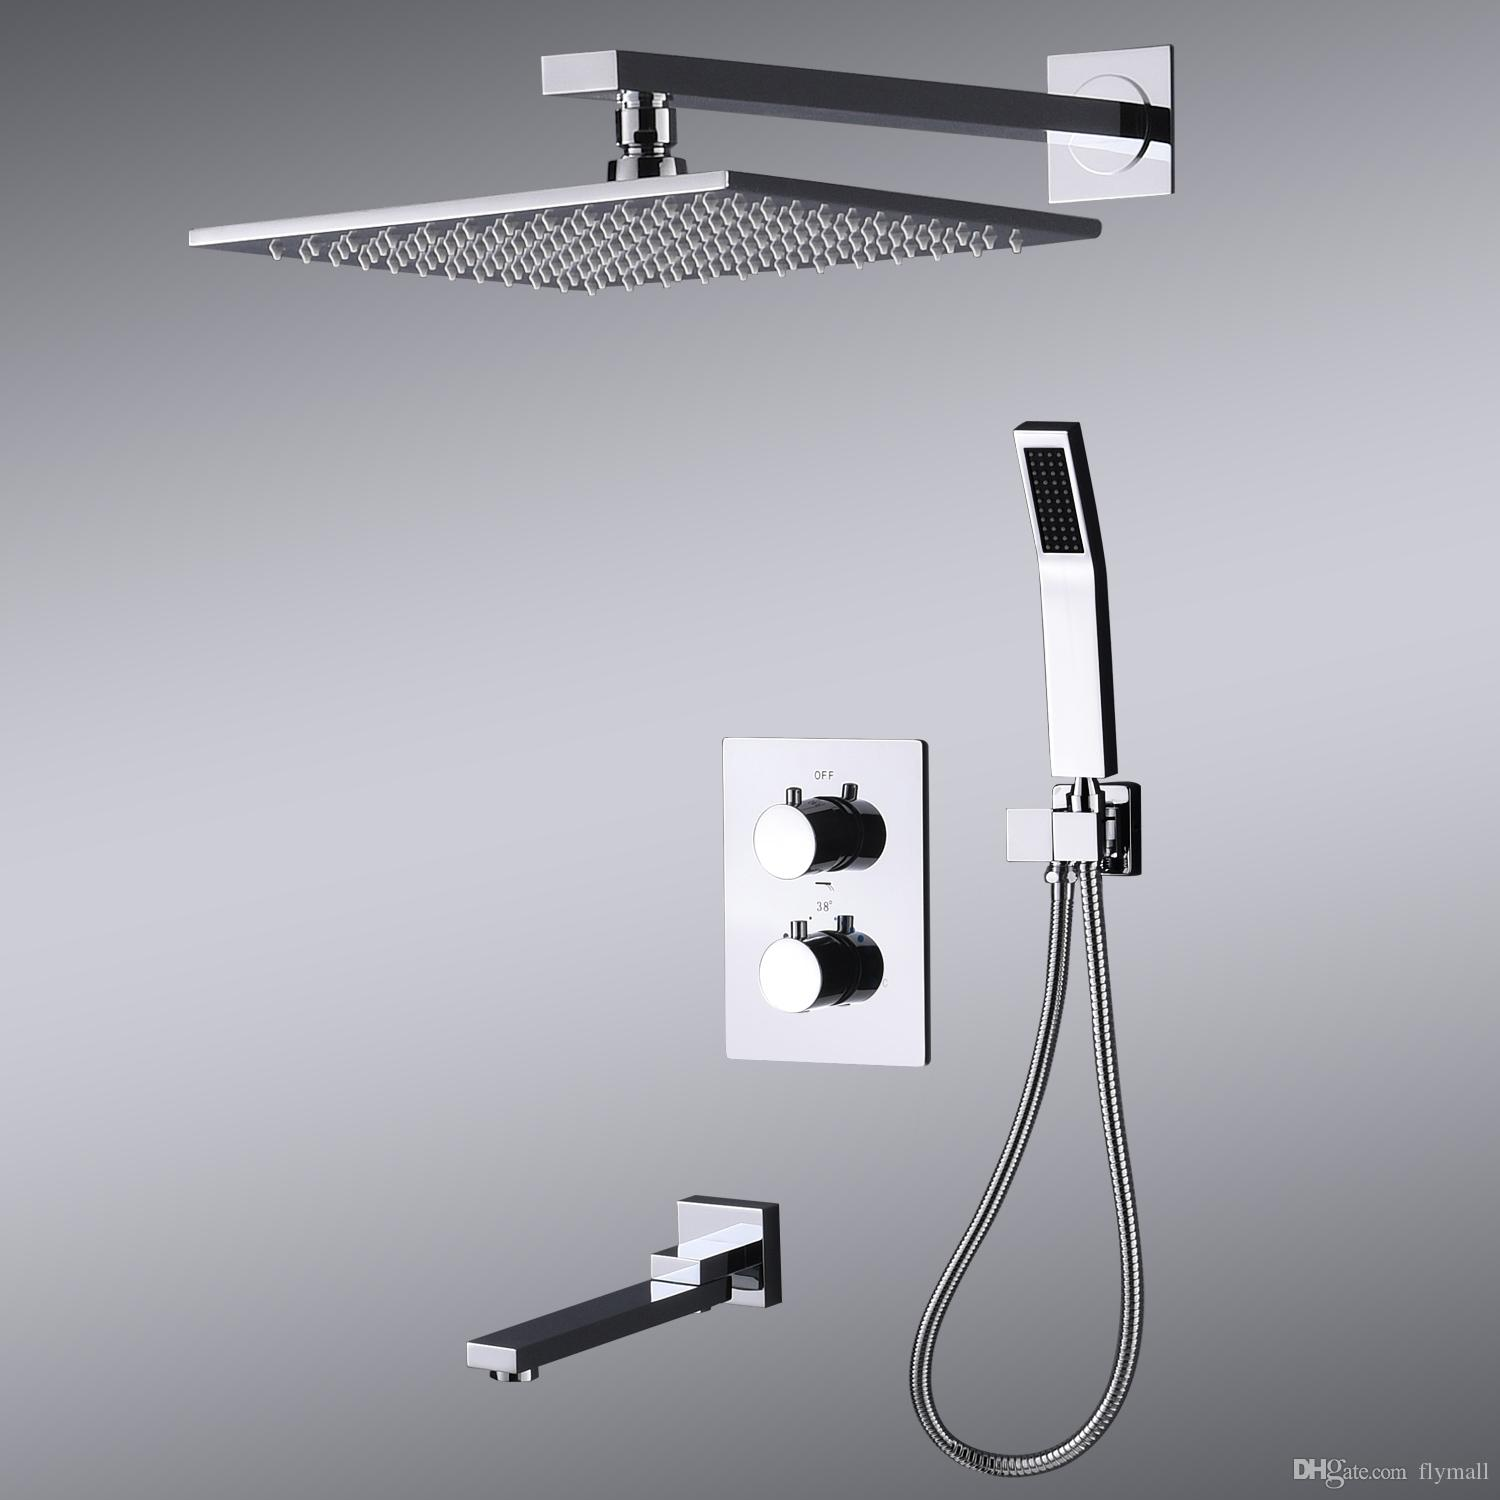 2019 10inch Wall Mounted Shower Faucet Bathroom Rainfall Shower System Set Thermostatic Faucets Tub Handheld Sprayer Fold Mixer Tap From Flymall